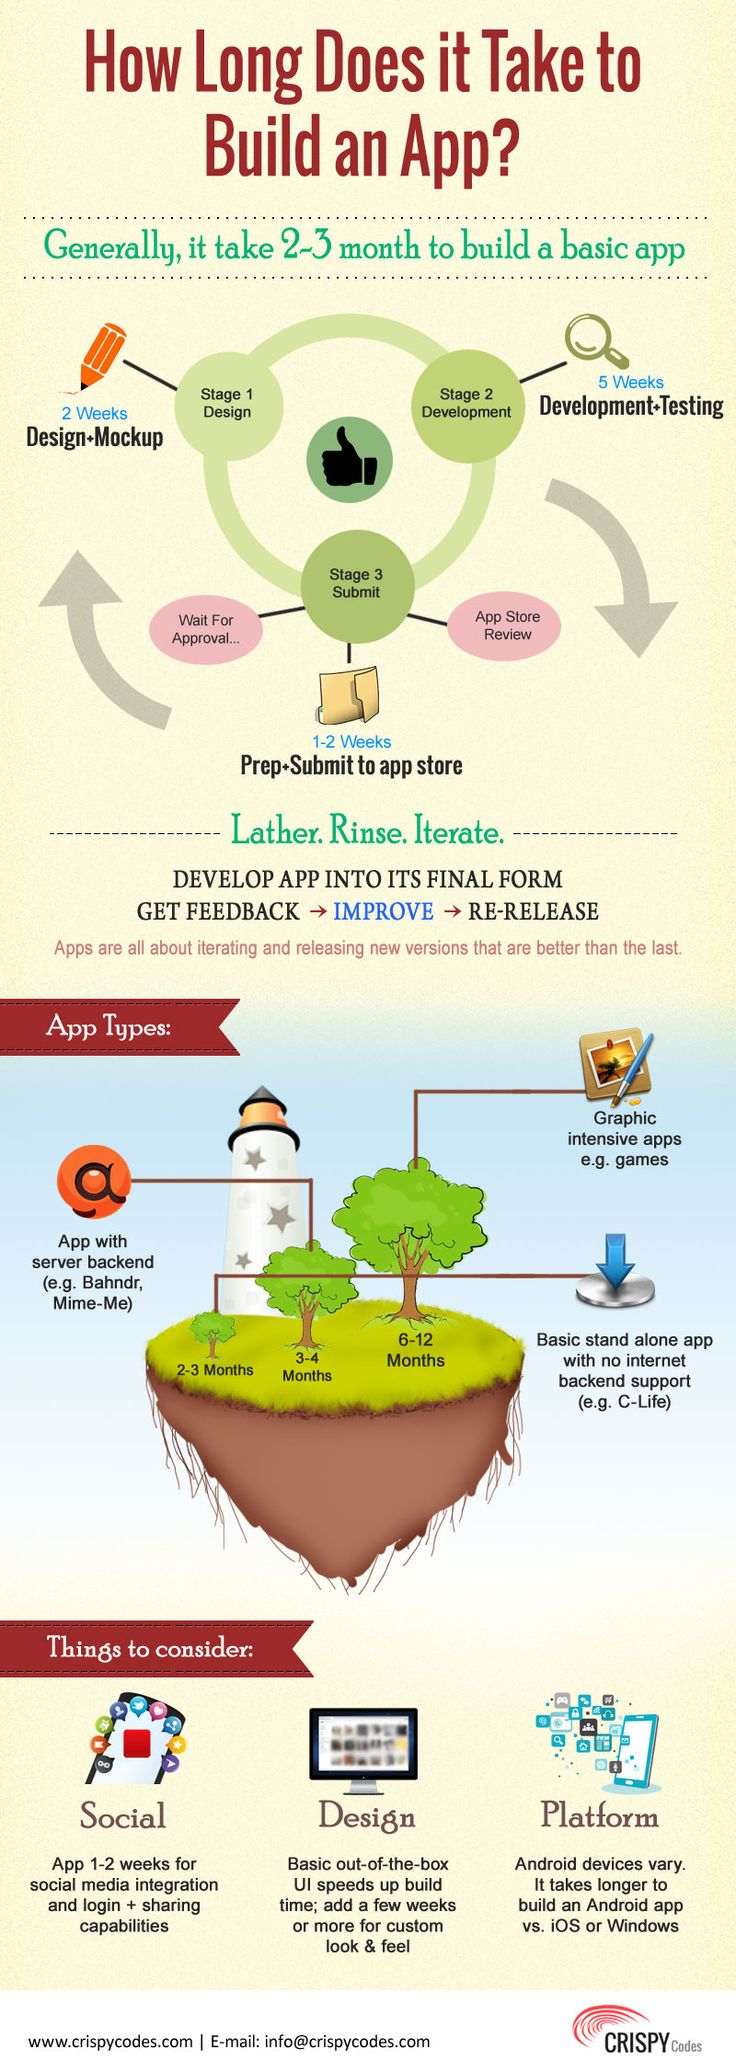 How Long It Takes To Build an App {Infographic} - Best Infographics